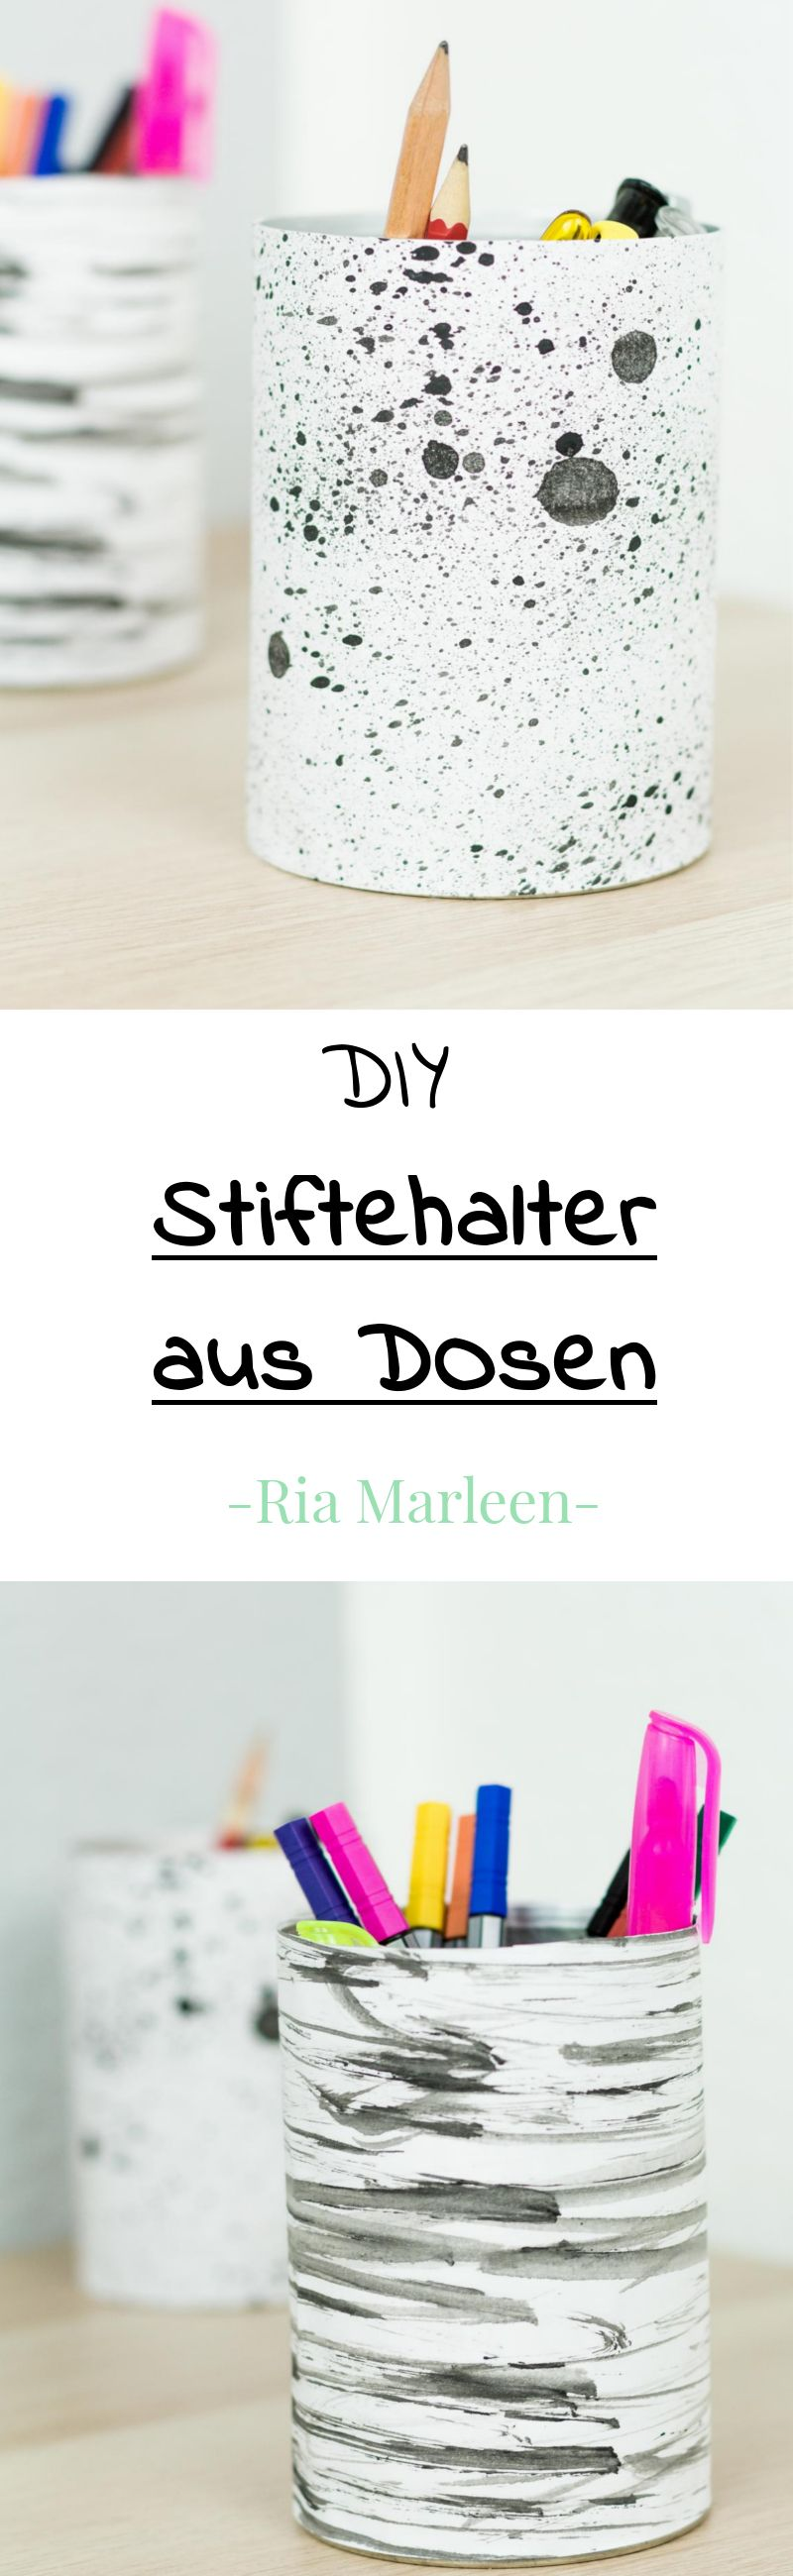 diy stiftehalter aus dosen basteln einfache und g nstige upcycling idee diy ideen von lovely. Black Bedroom Furniture Sets. Home Design Ideas